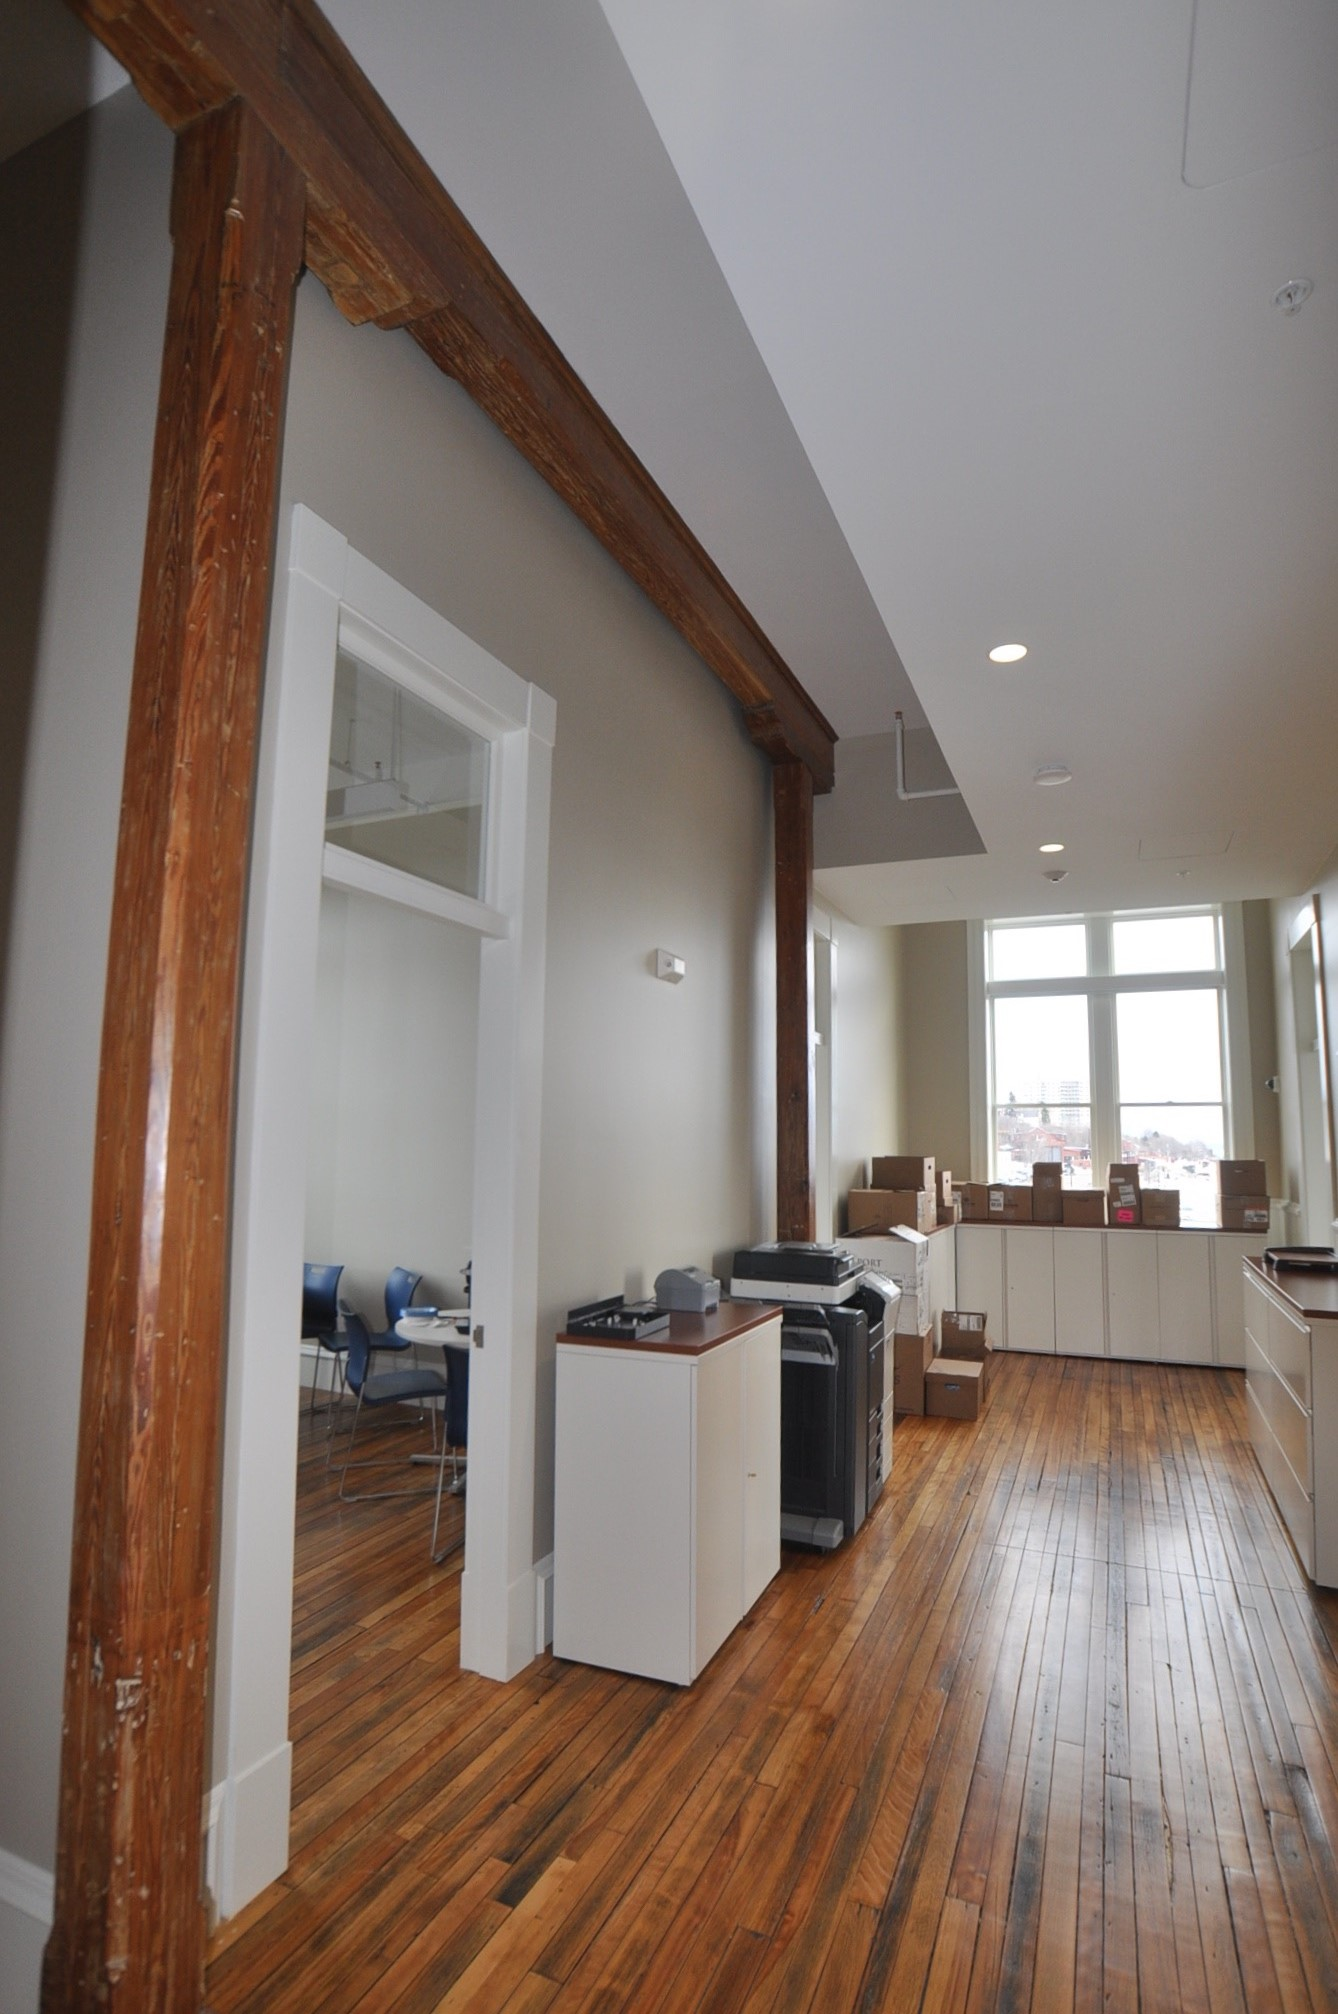 Photo 28 after- grand trunk with historic beams.jpg